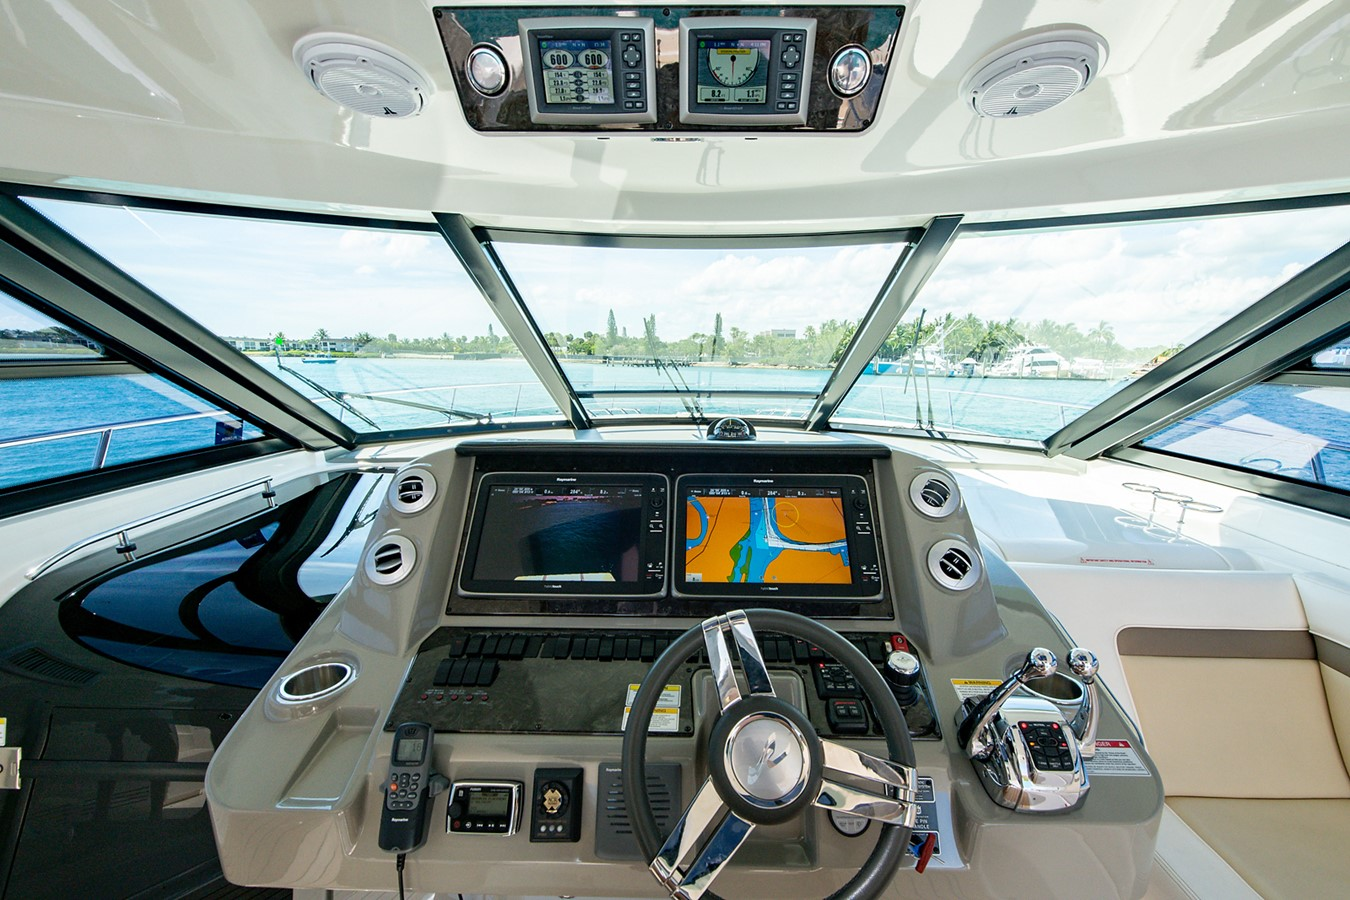 2013 SEA RAY Sundancer Motor Yacht 2531175